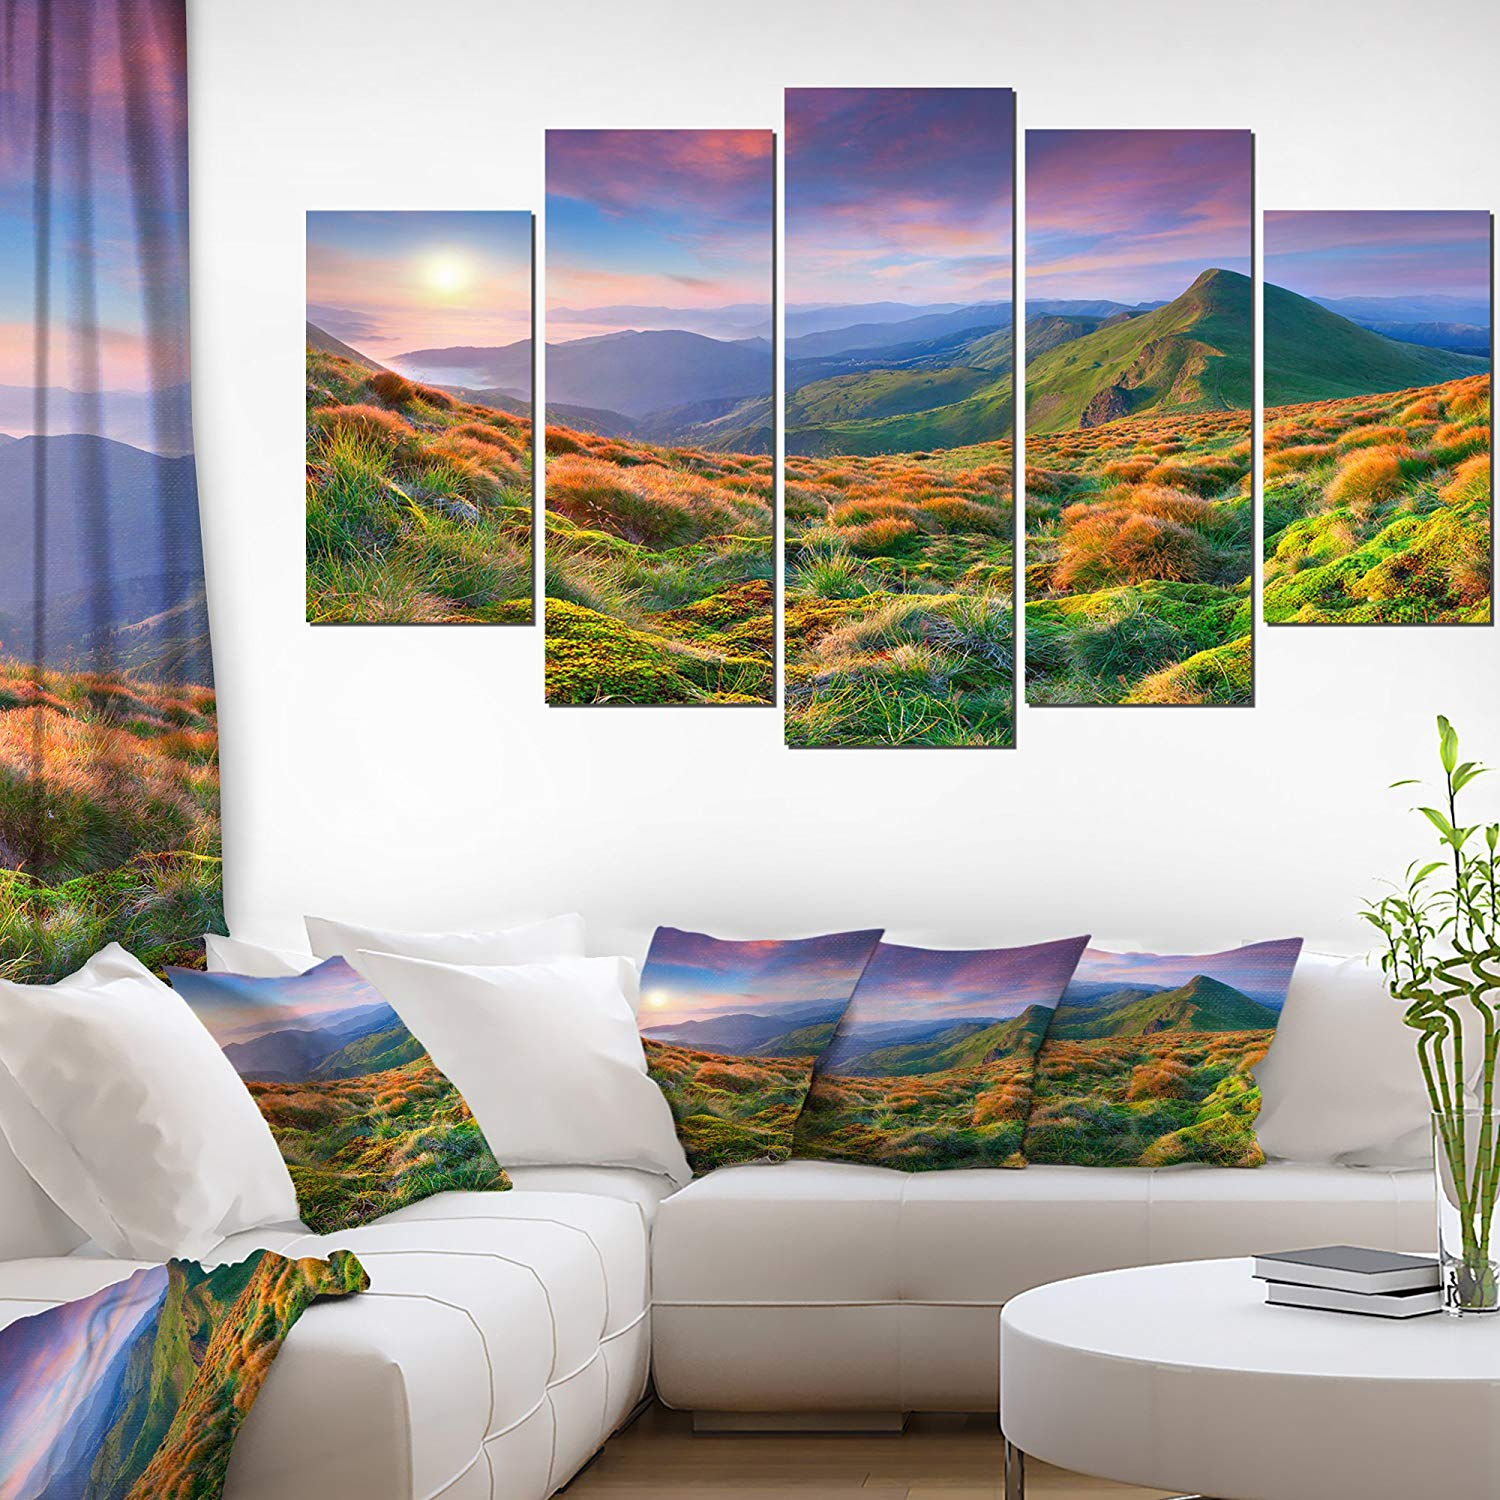 Purple Sky and Green Mountains Landscape Photo on Canvas Art Wall Photgraphy Artwork Print